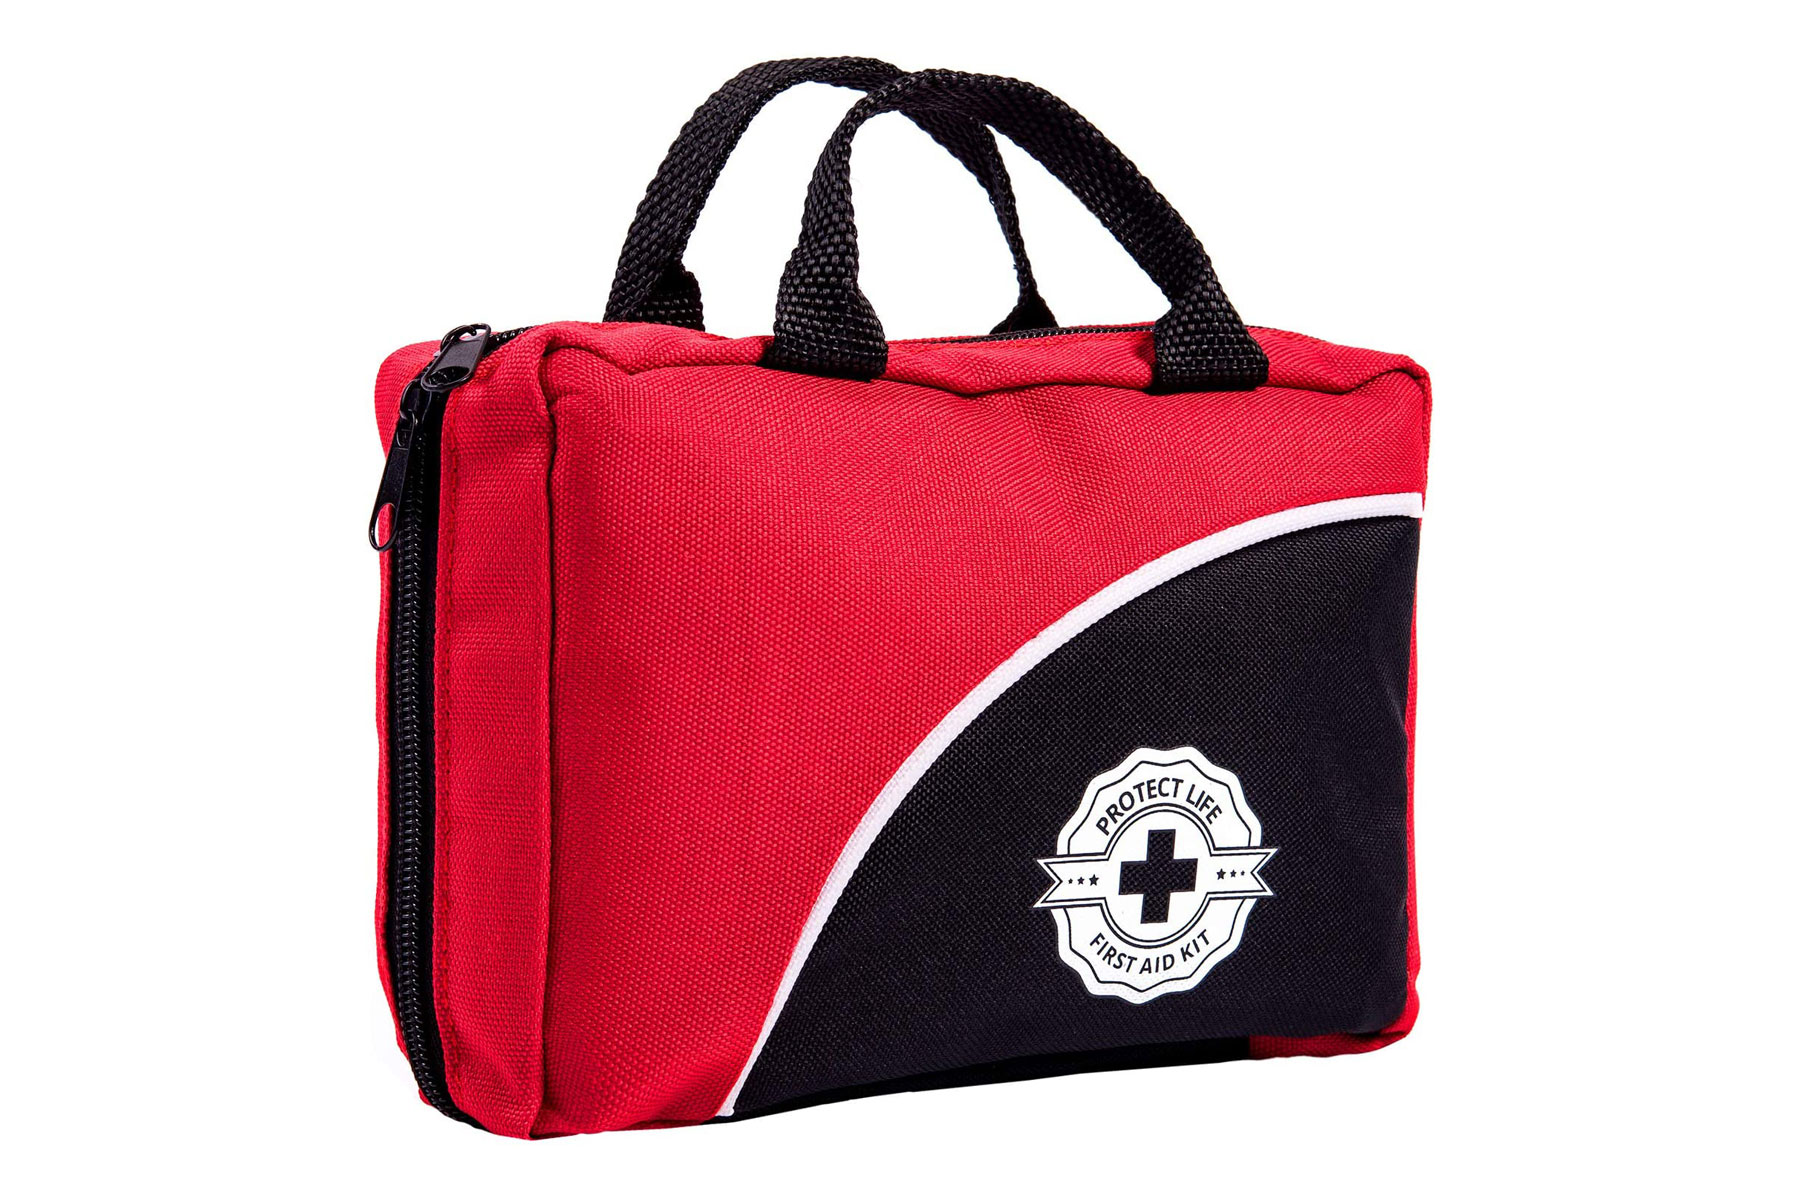 Red and black first aid kit bag